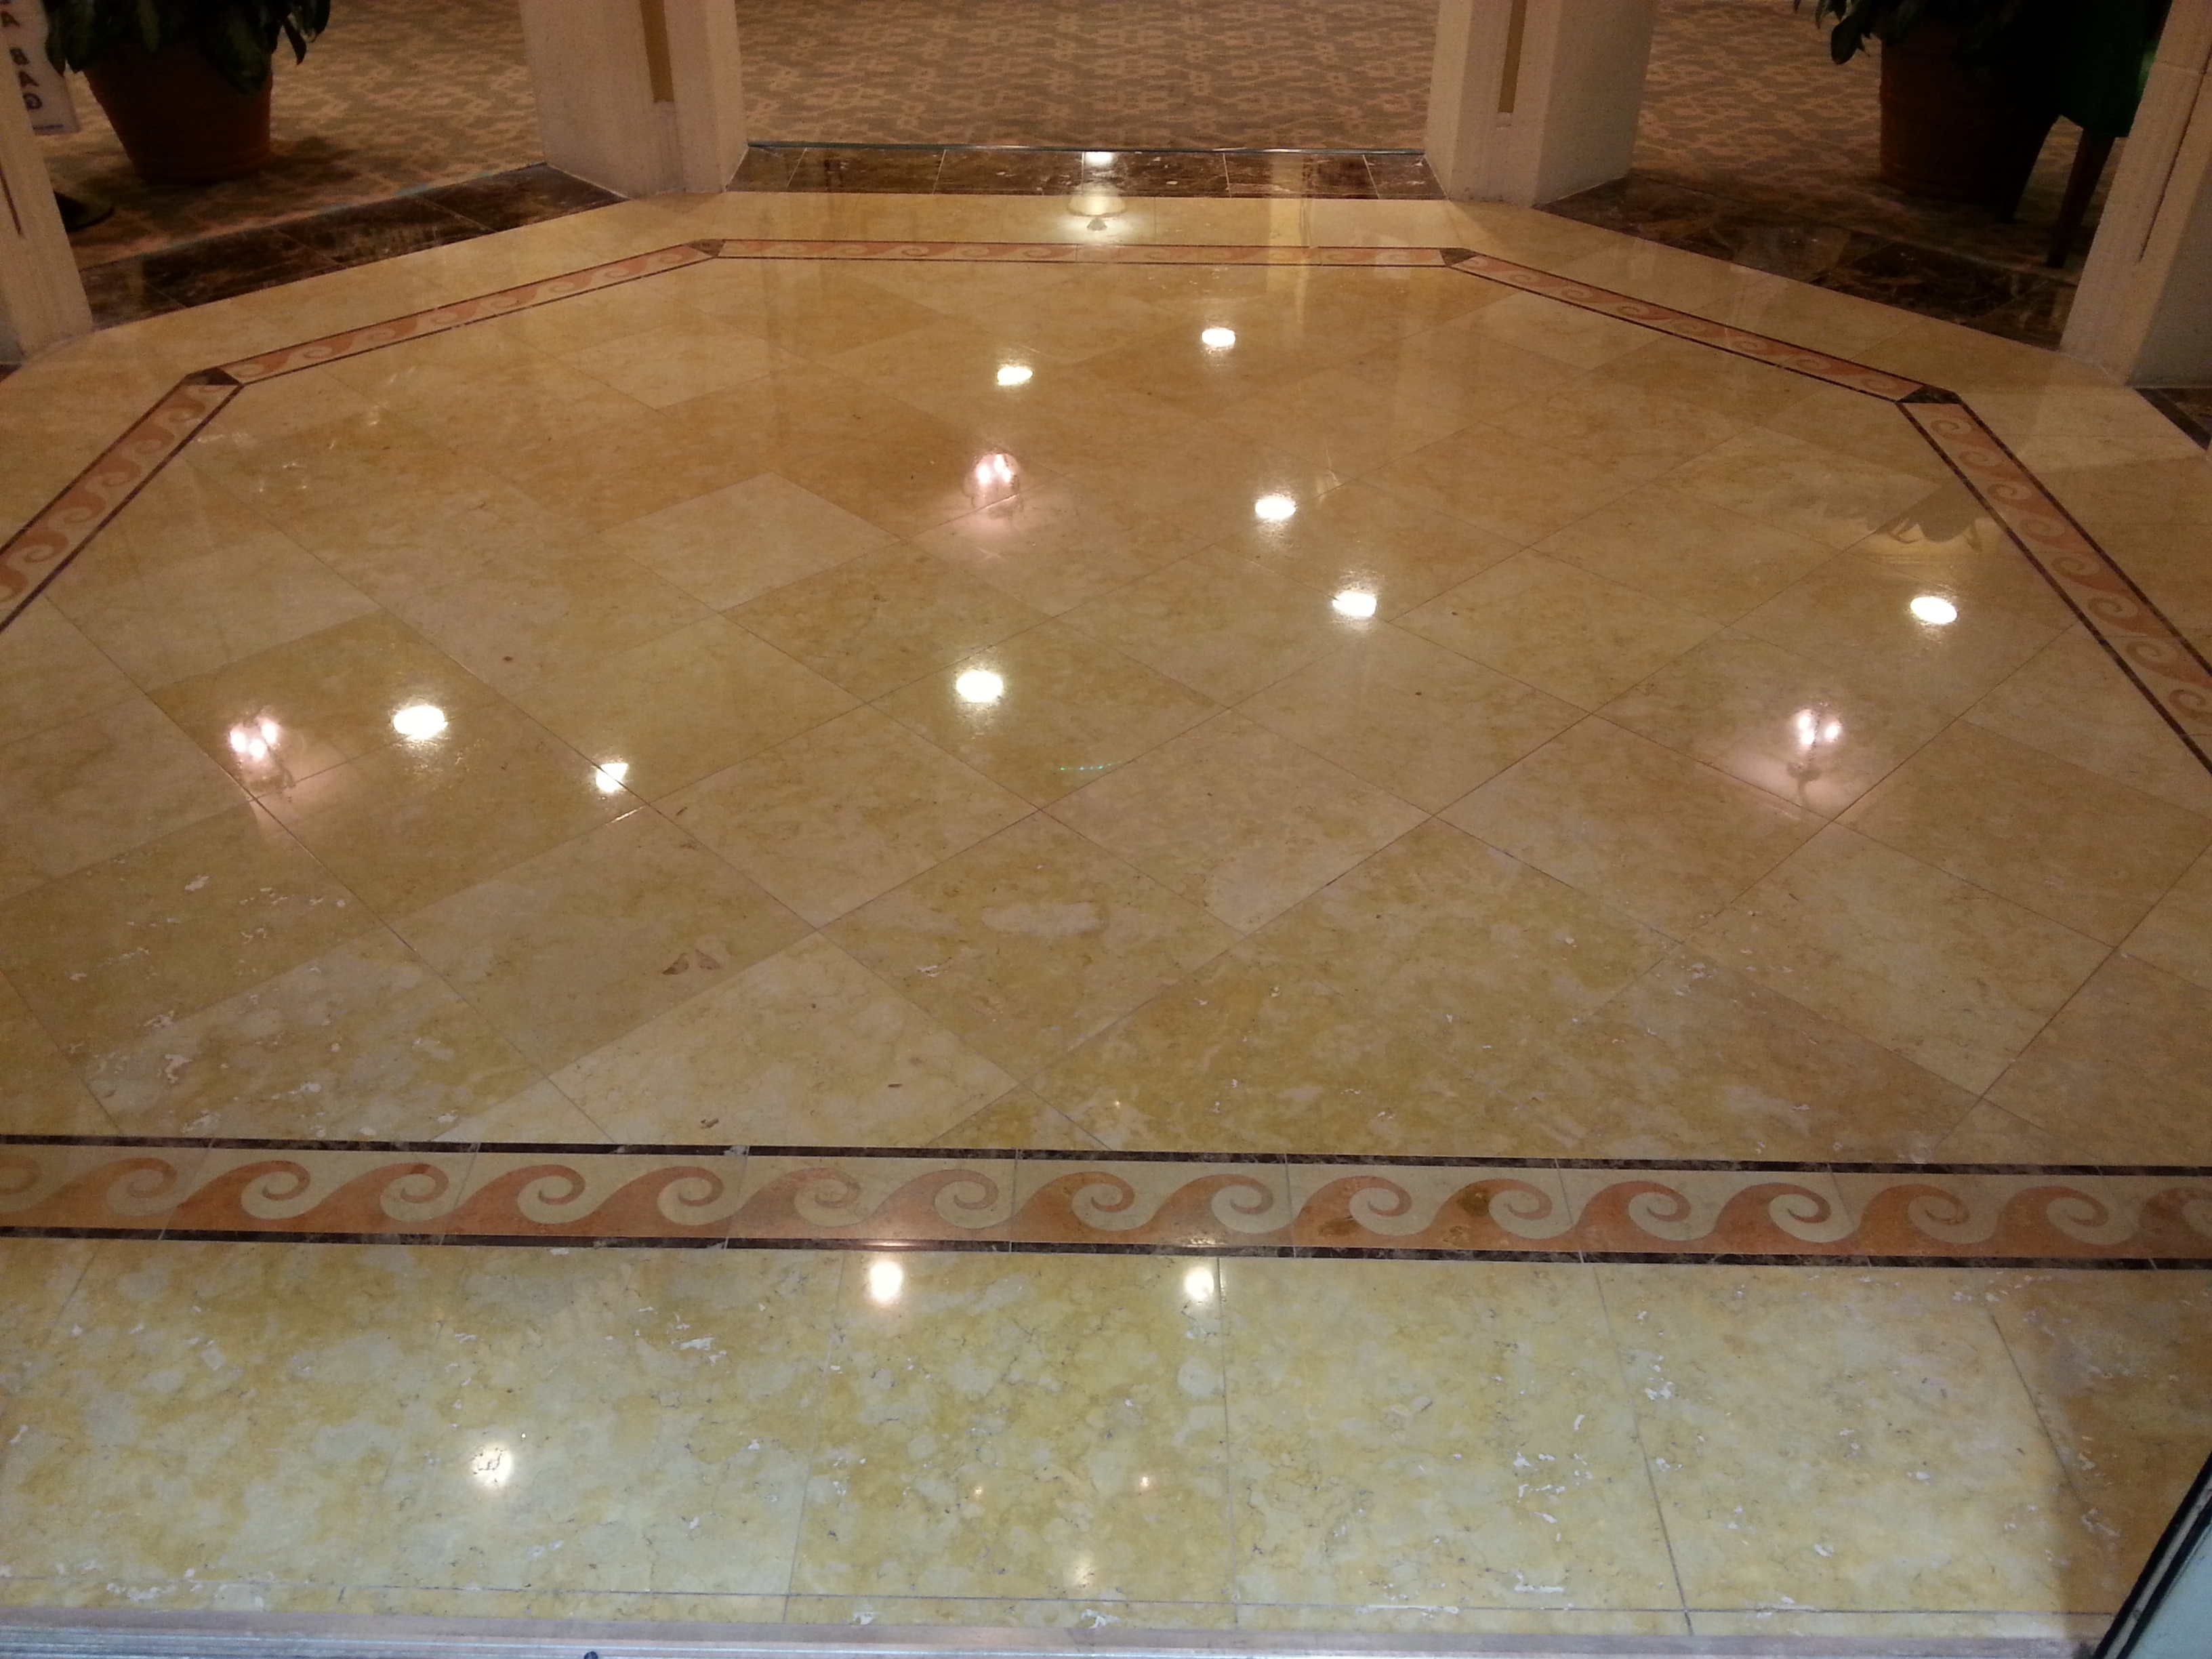 Rcn cleaning services floor cleaning services commercial floor marble cleaning in fort lauderdale marble cleaning in coral gables dailygadgetfo Image collections